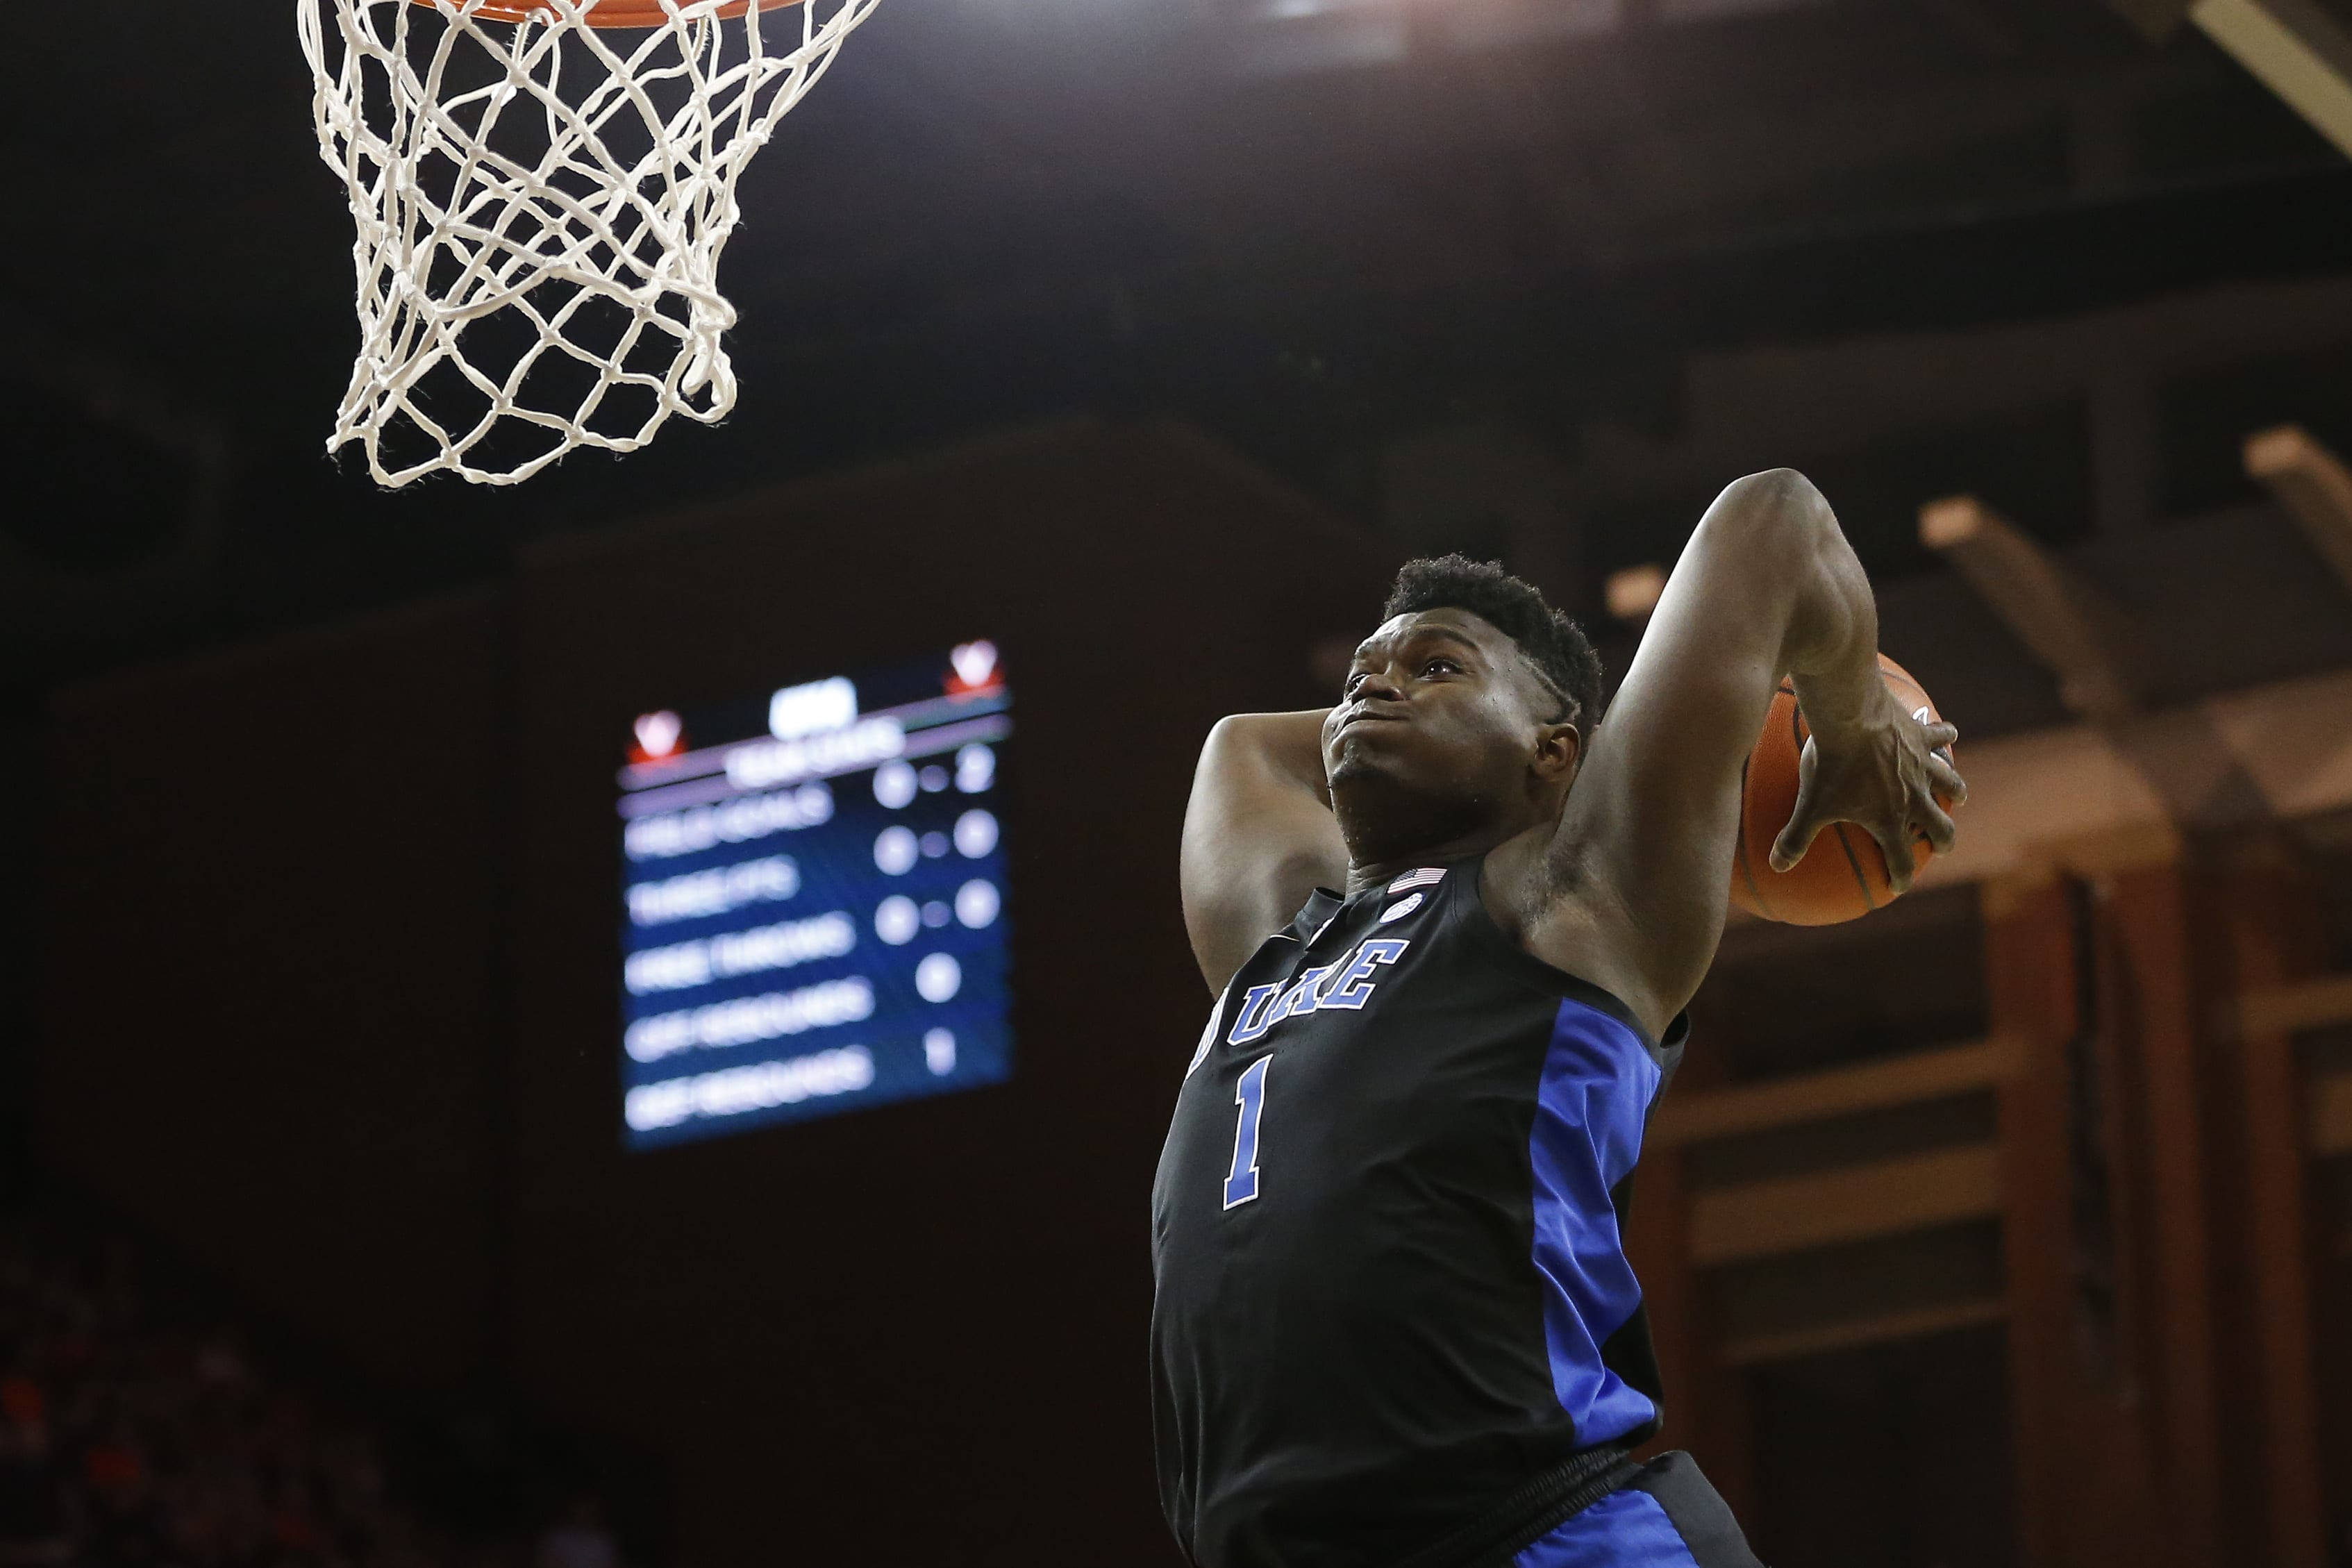 The New York Knicks could draft Zion Williamson if they win out in the NBA lottery.